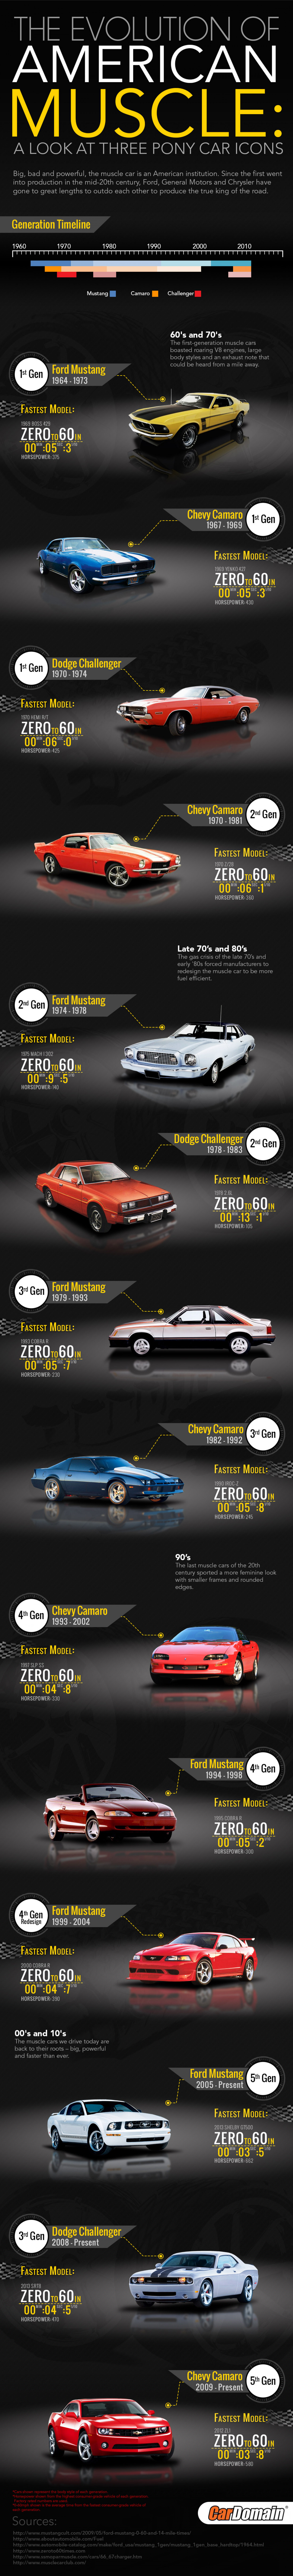 The Evolution of American Muscle: A Look at Three Pony Car Icons Infographic